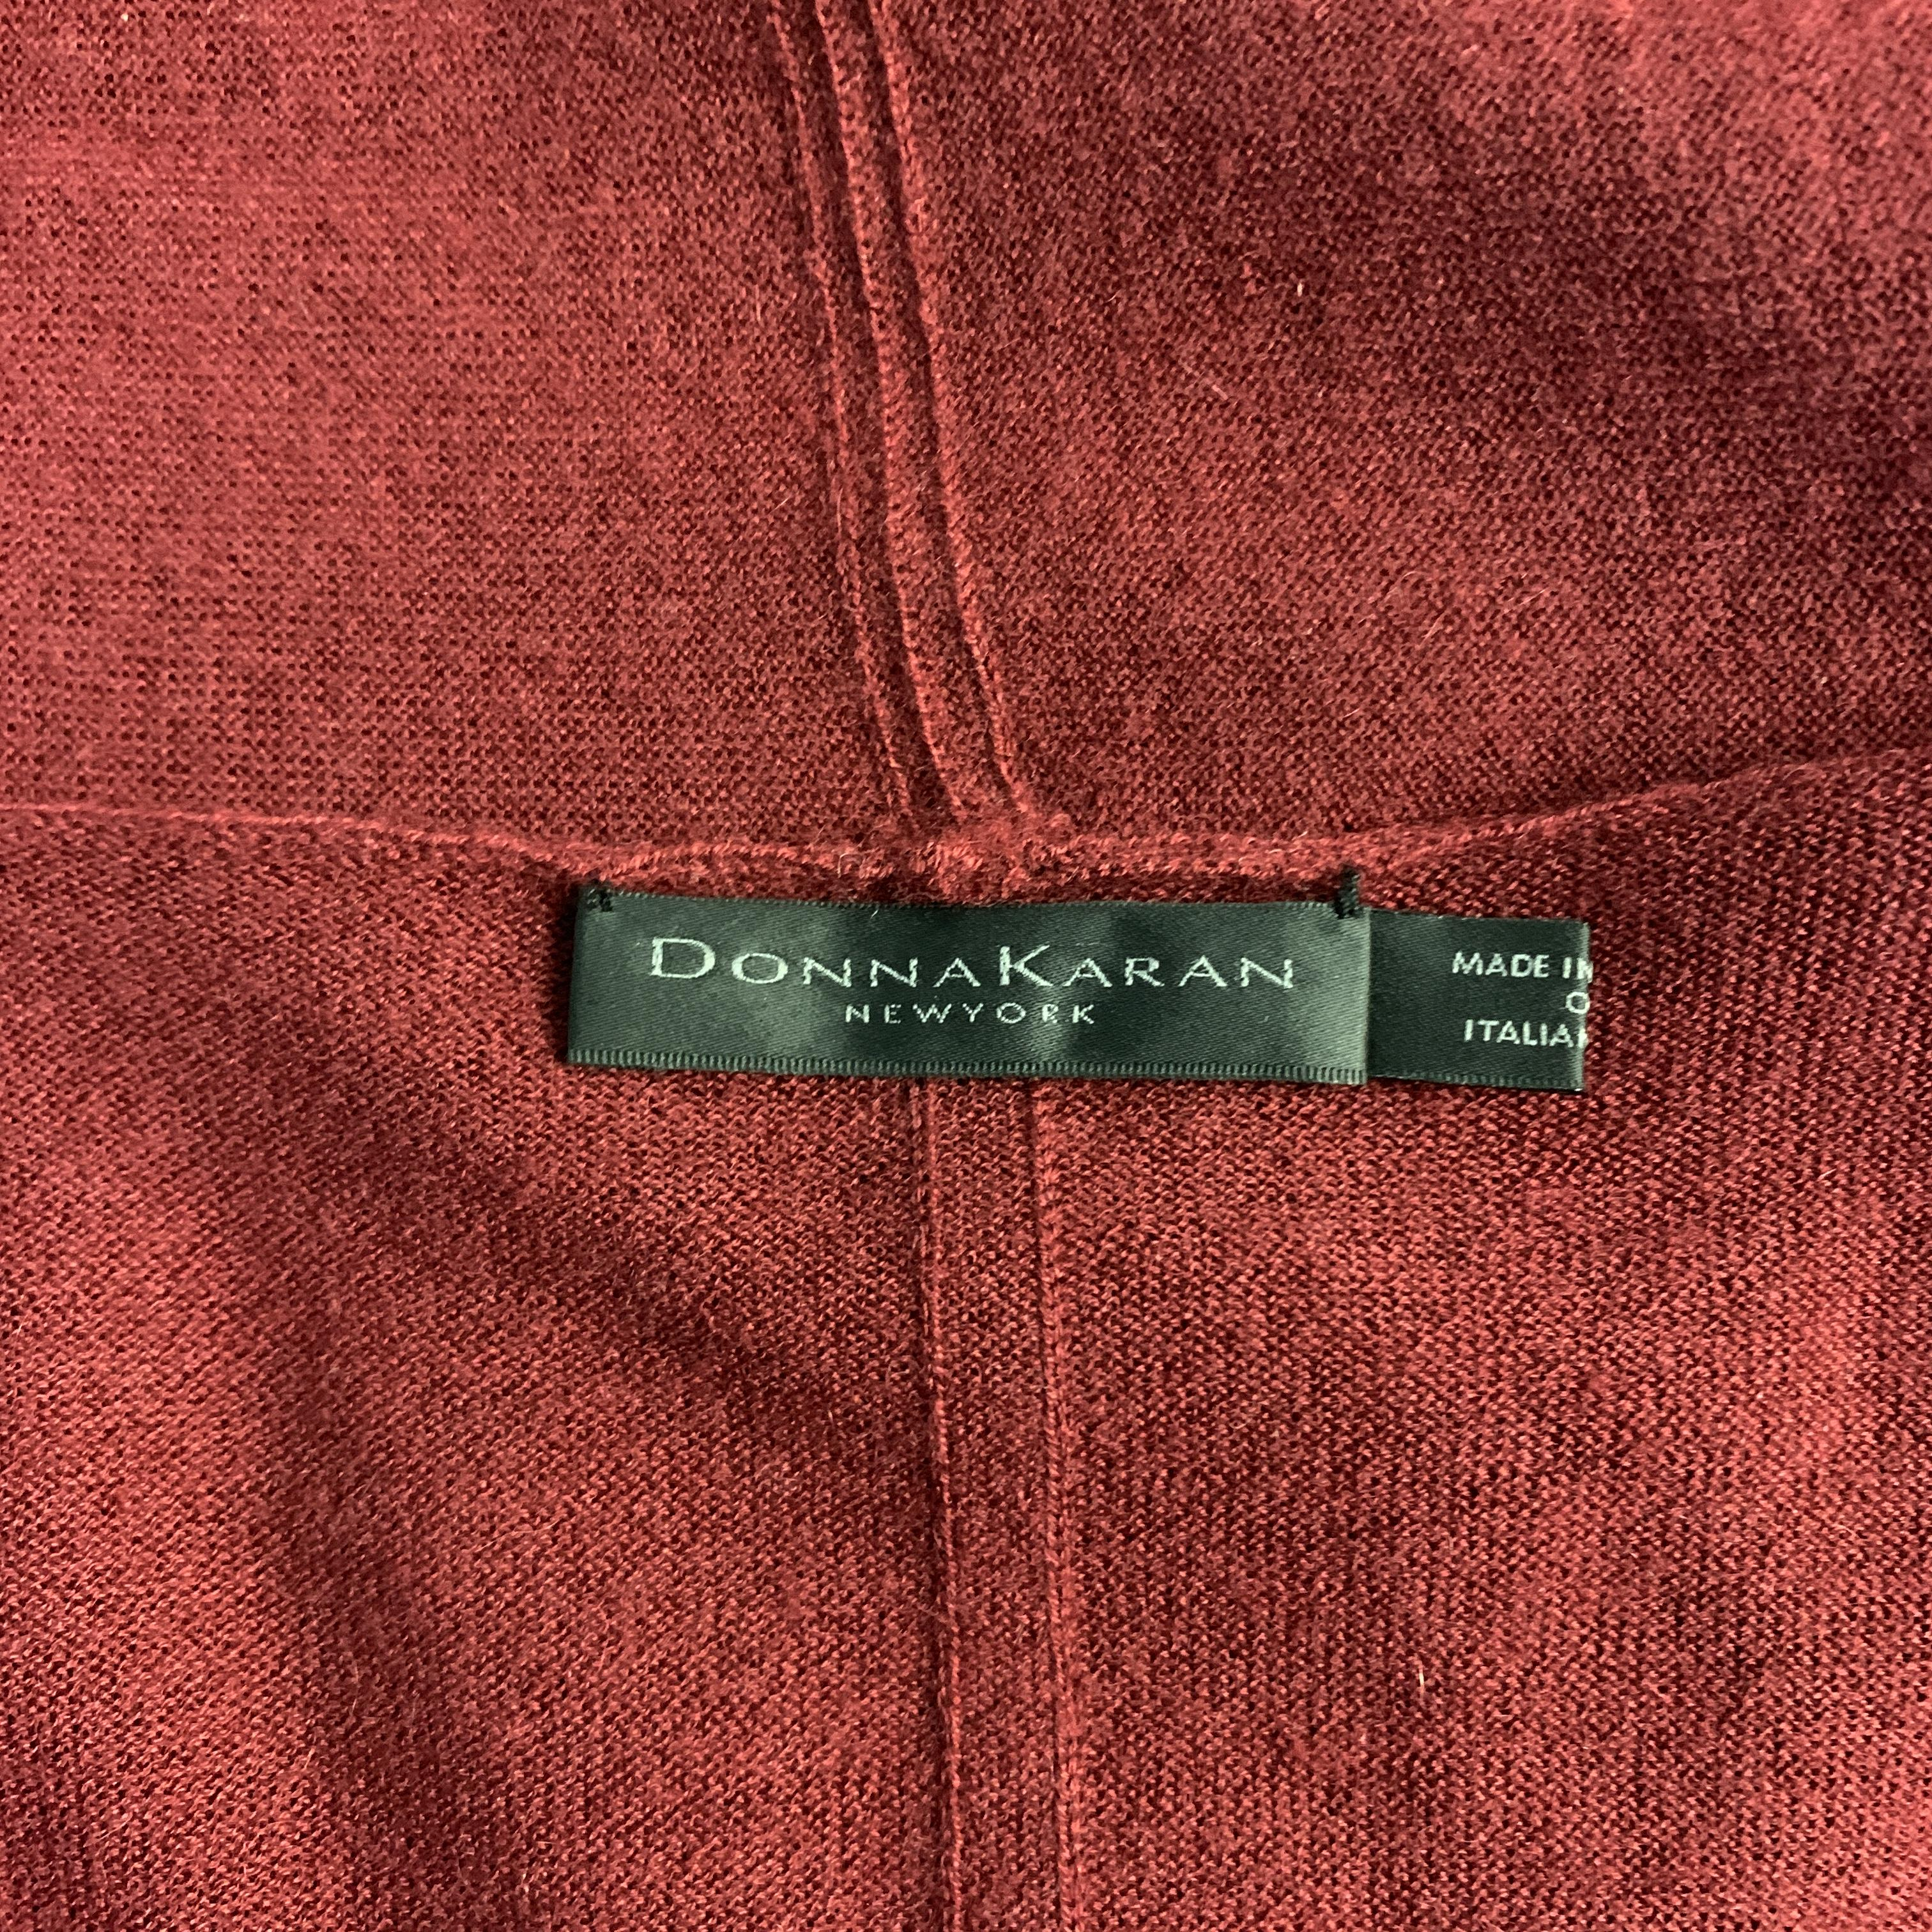 6b58ce97c1028c DONNA KARAN Size S Burgundy Cashmere Asymmetrical Cardigan Sweater For Sale  at 1stdibs